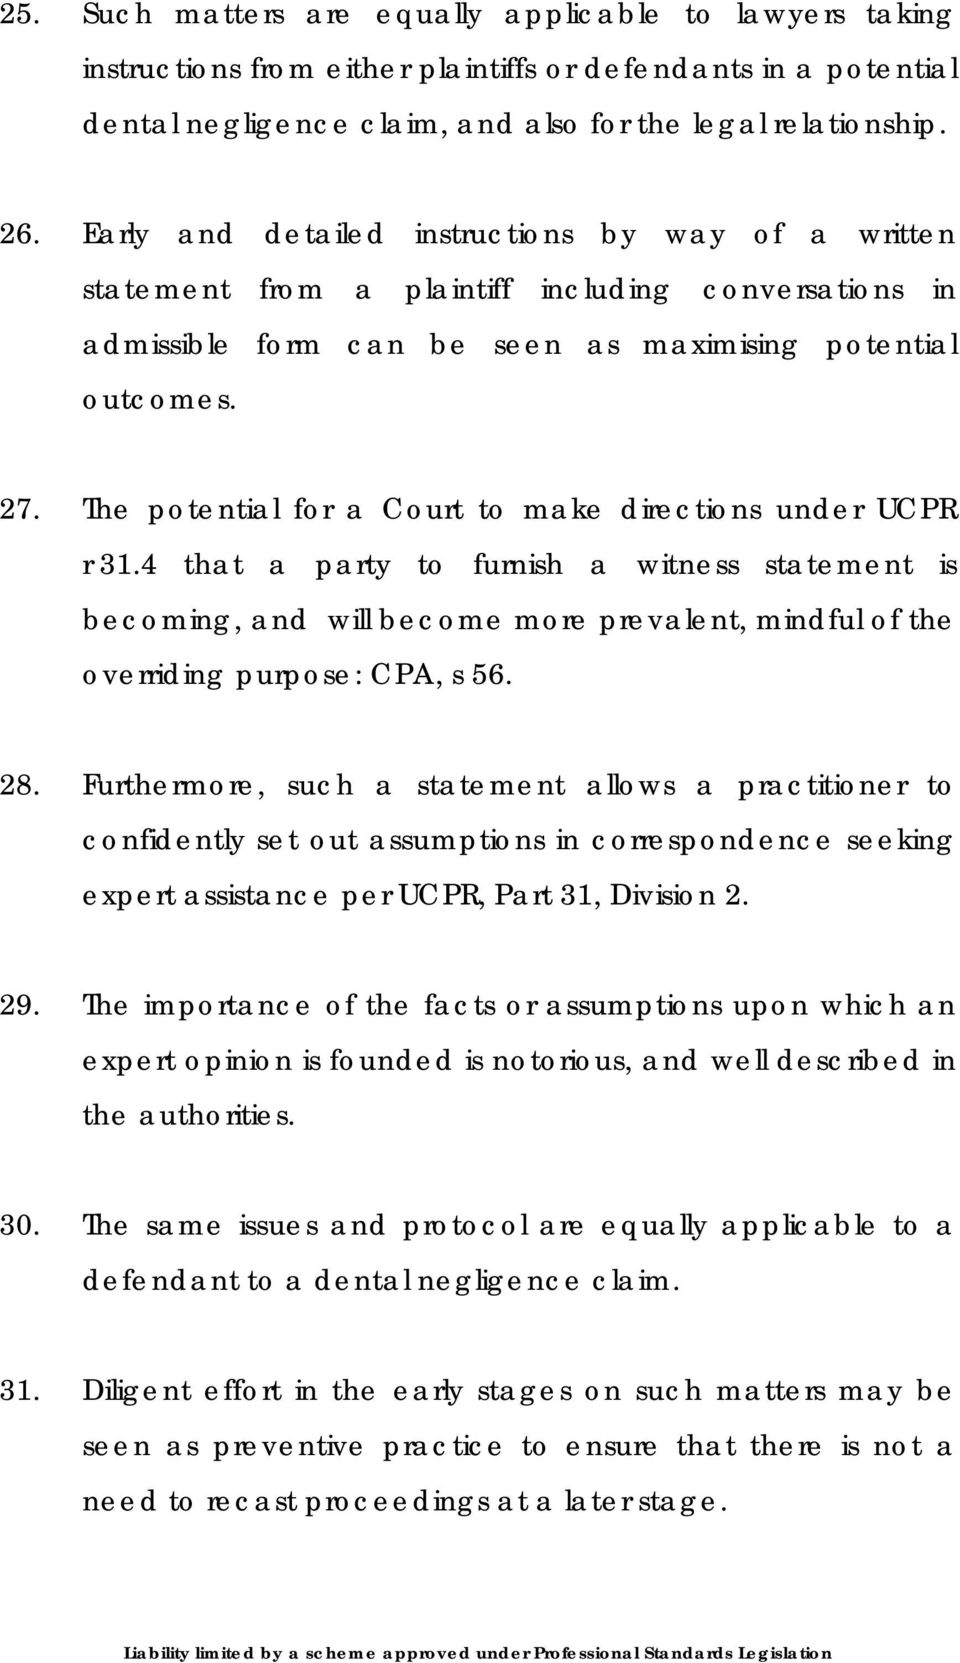 The potential for a Court to make directions under UCPR r 31.4 that a party to furnish a witness statement is becoming, and will become more prevalent, mindful of the overriding purpose: CPA, s 56.